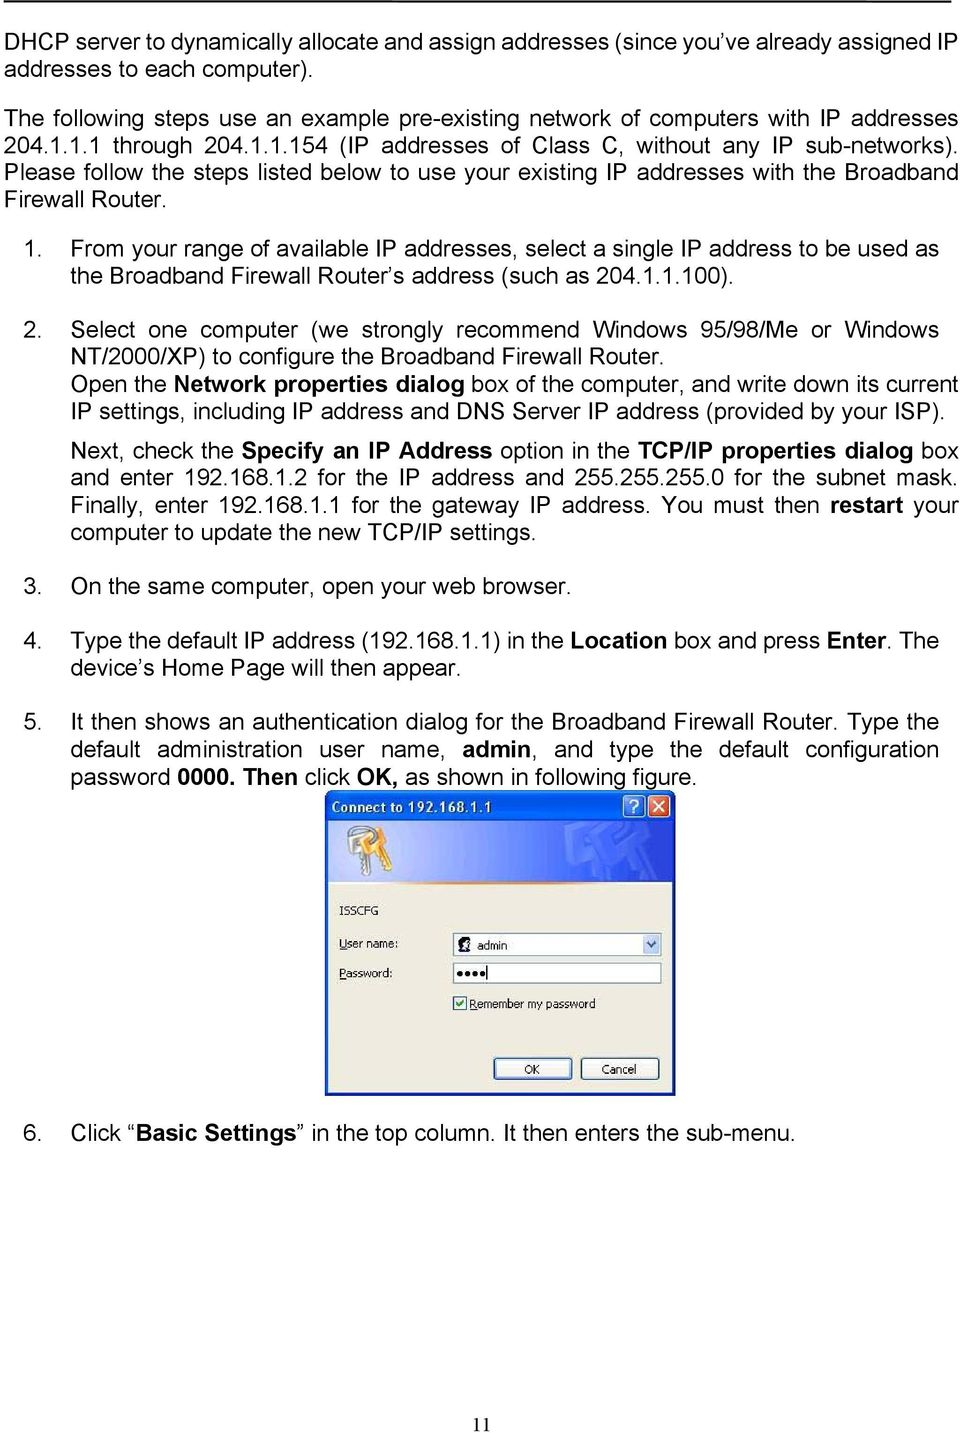 Please follow the steps listed below to use your existing IP addresses with the Broadband Firewall Router. 1.